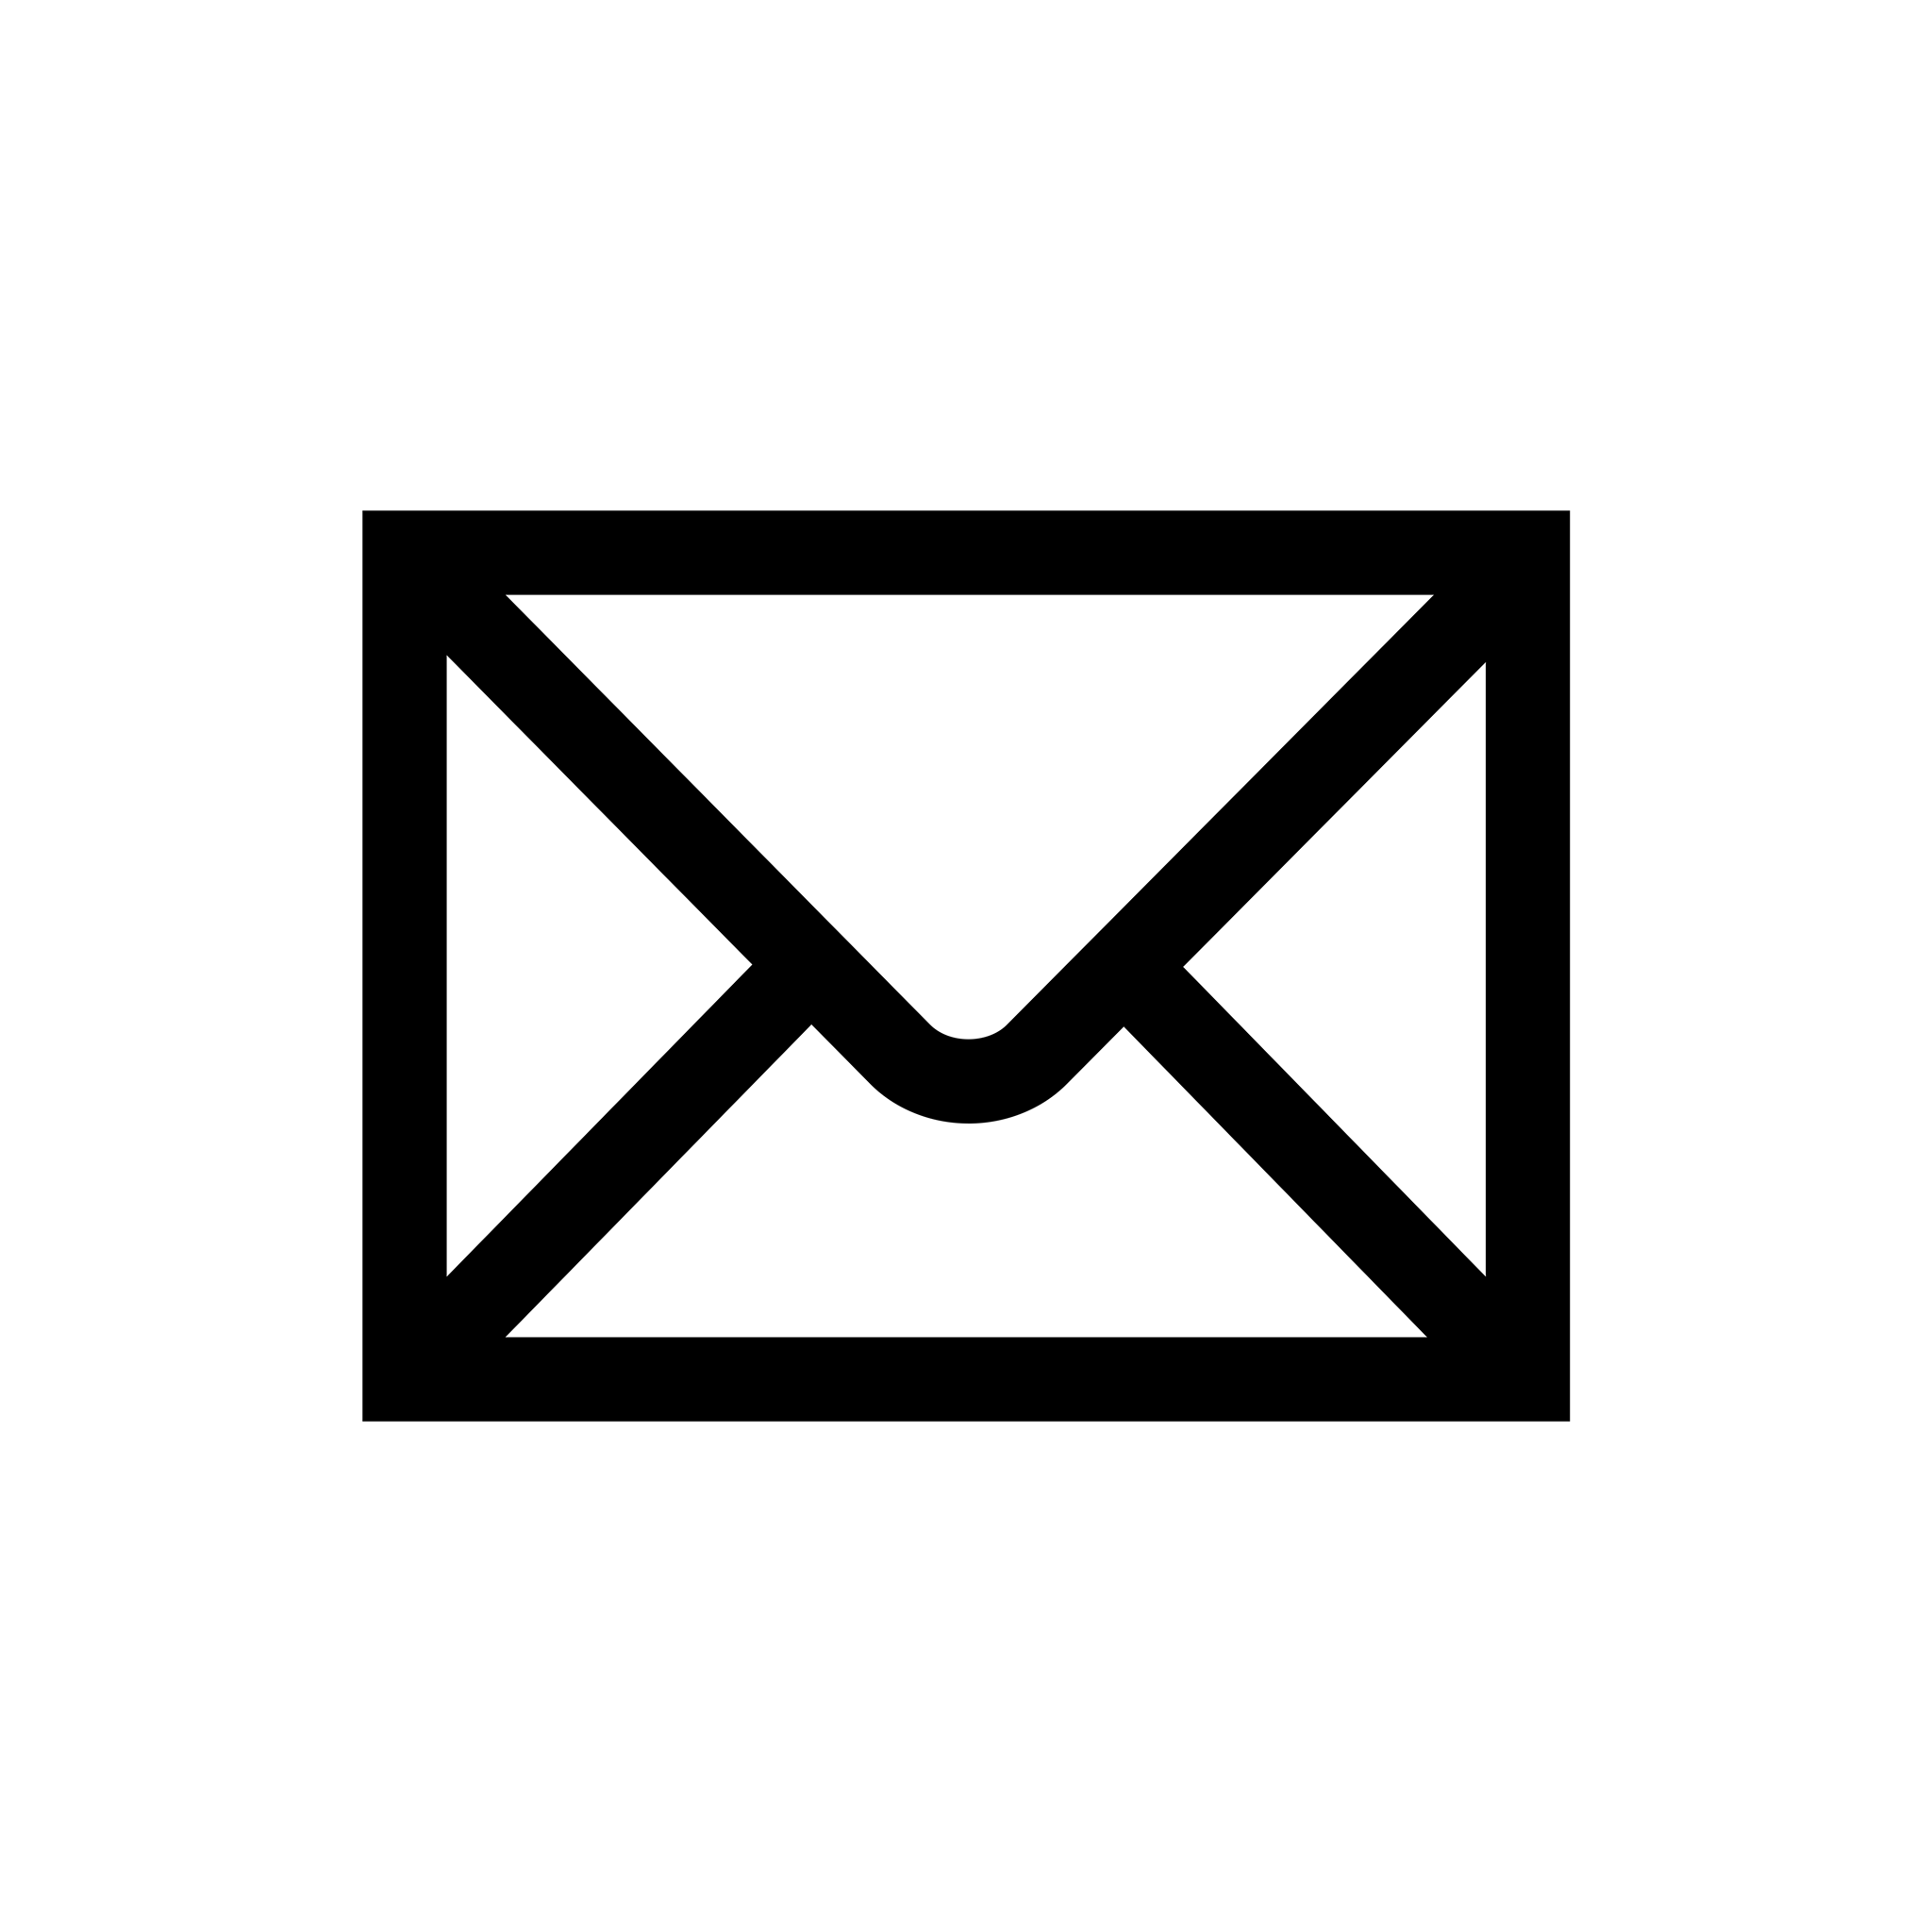 Email Icon Black Simple transparent PNG - StickPNG